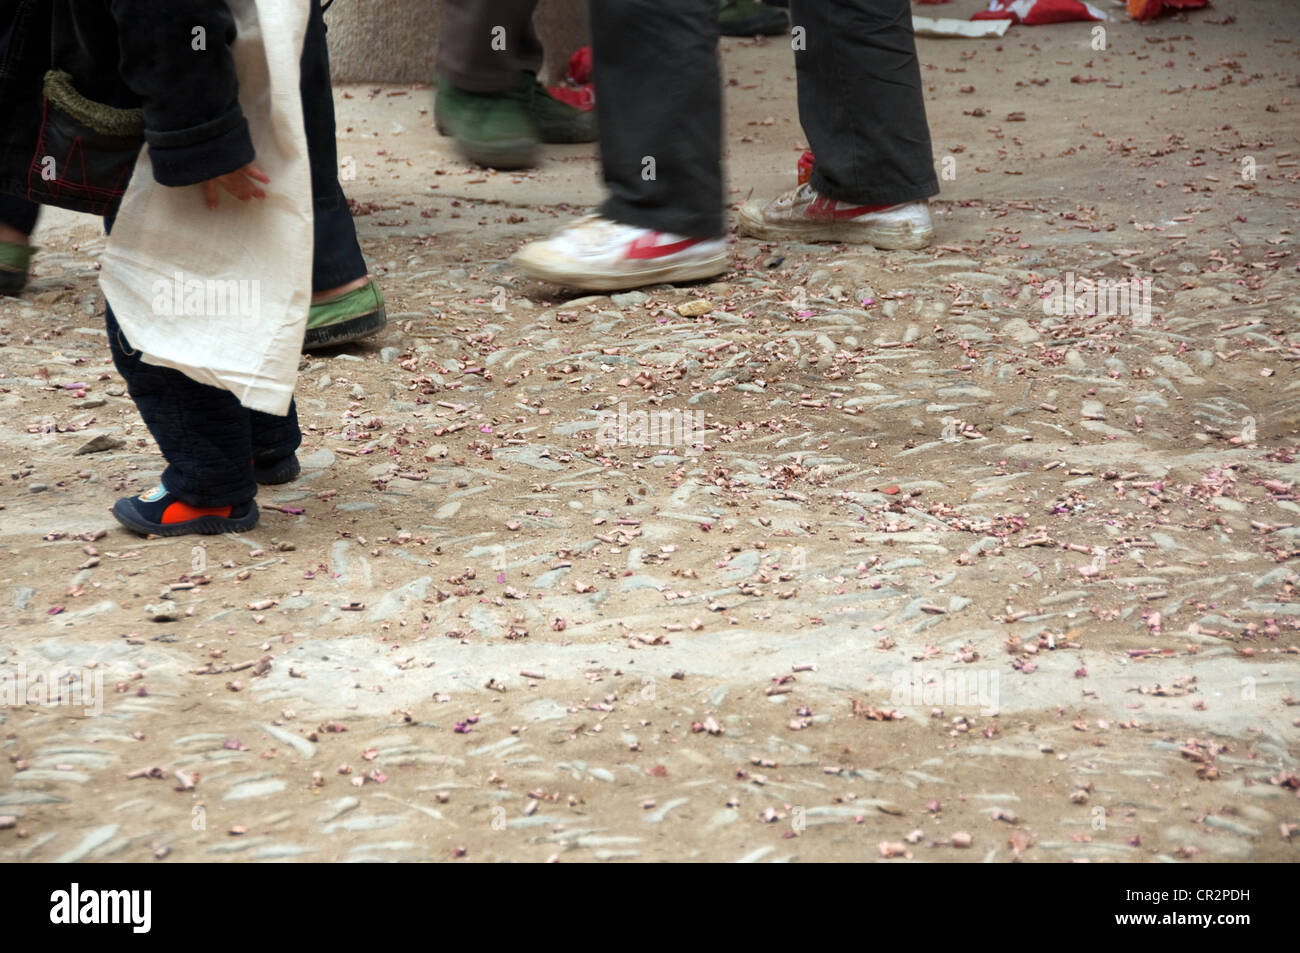 Used fireworks on the ground during a funeral rite, Zhaoxing Dong Village, Southern China Stock Photo